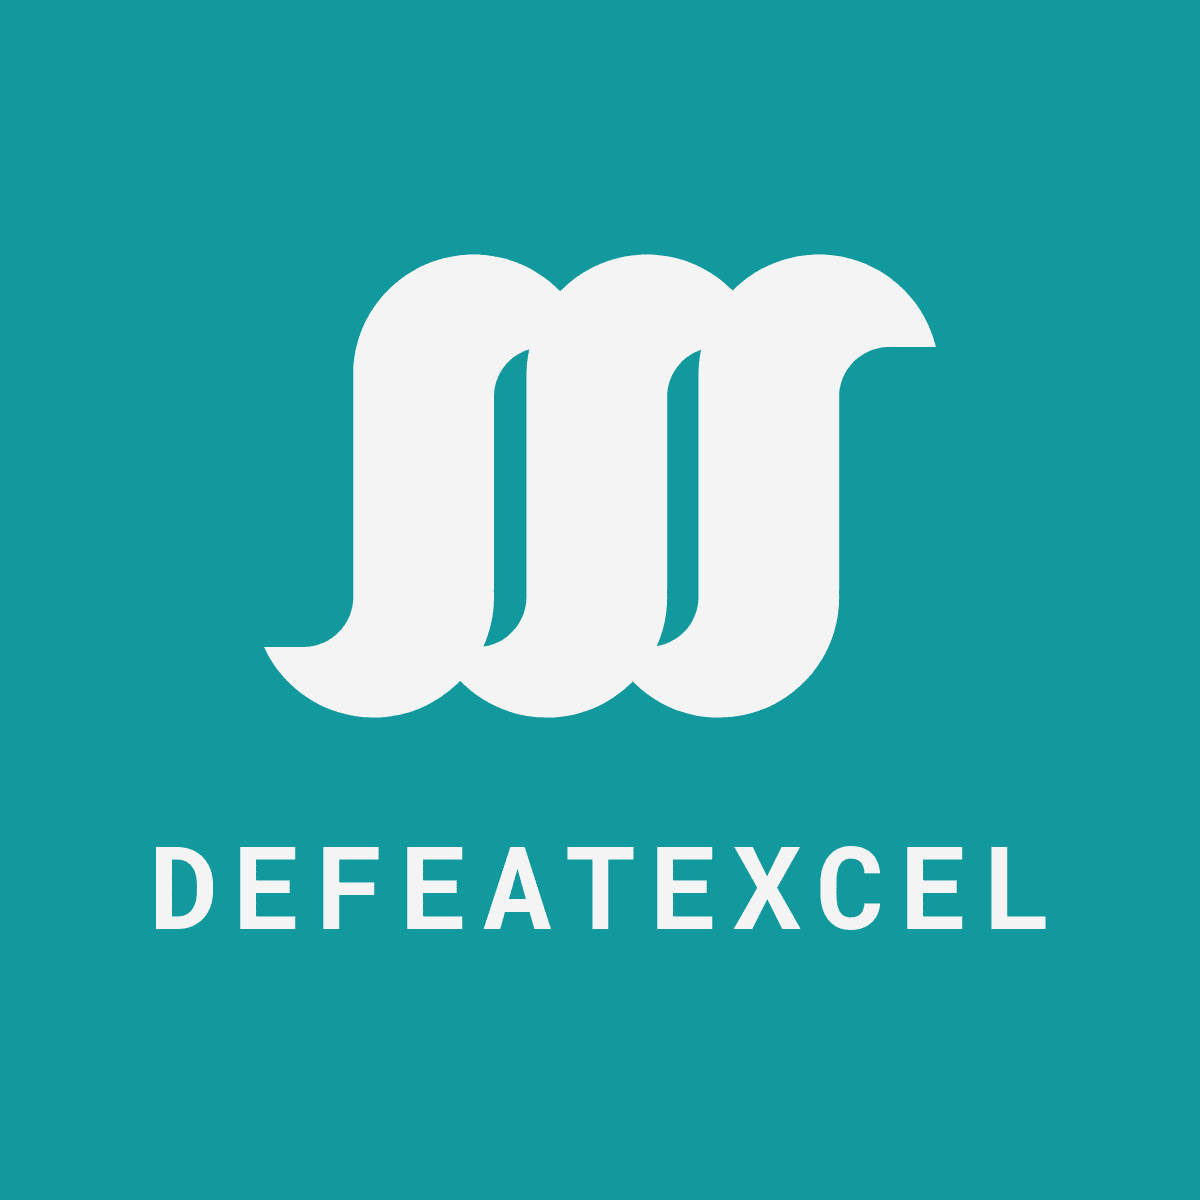 DefeatExcel